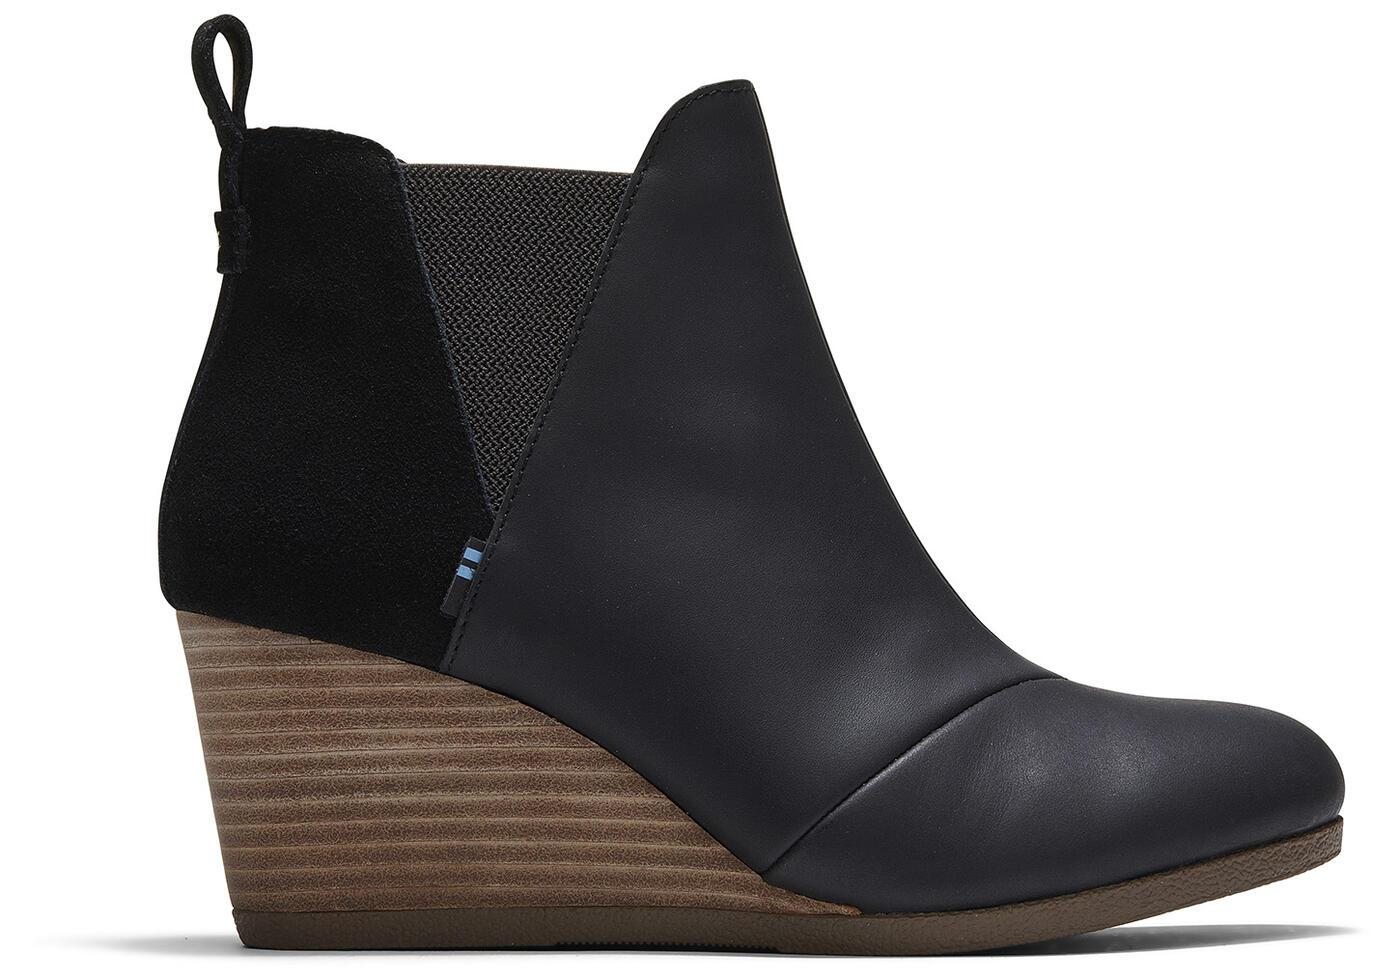 Toms Shoes Women's Shoes TOMs Kelsey Bootie || David's Clothing